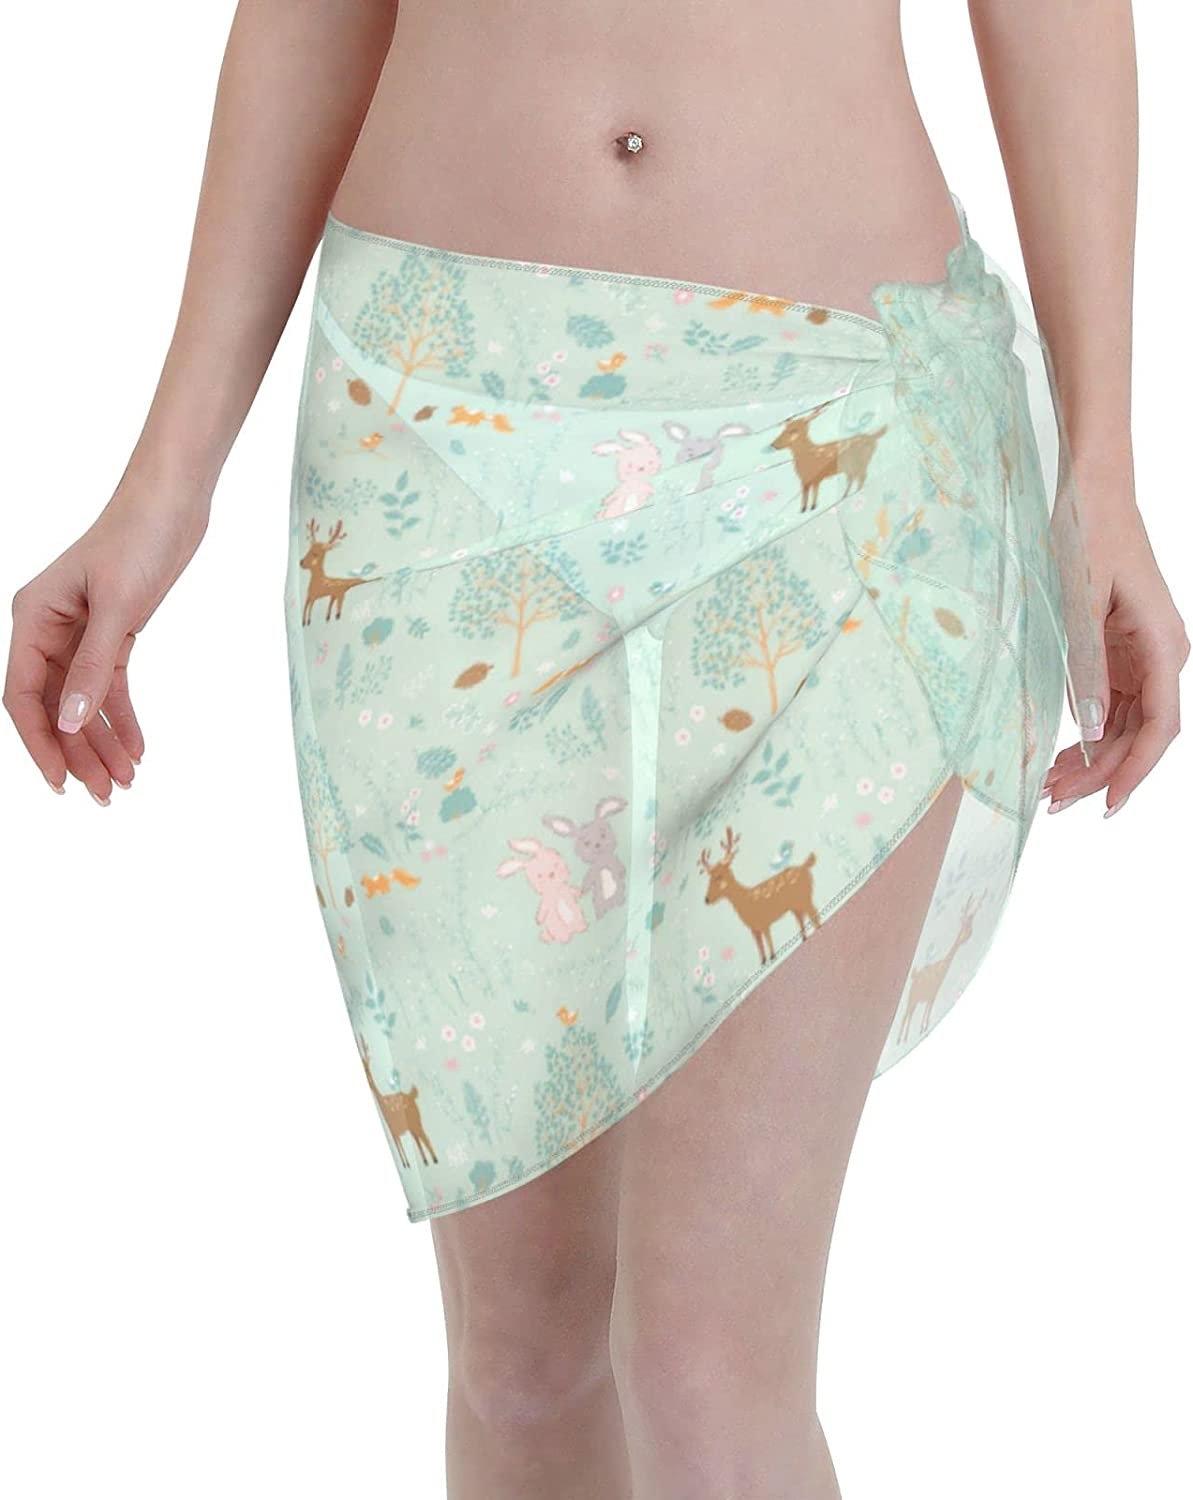 Swimsuit Cover Ups for Women Forest On Springtime with Cute Animals Beach Wrap Sheer Short Skirt Bikini Chiffon Scarf for Swimwear